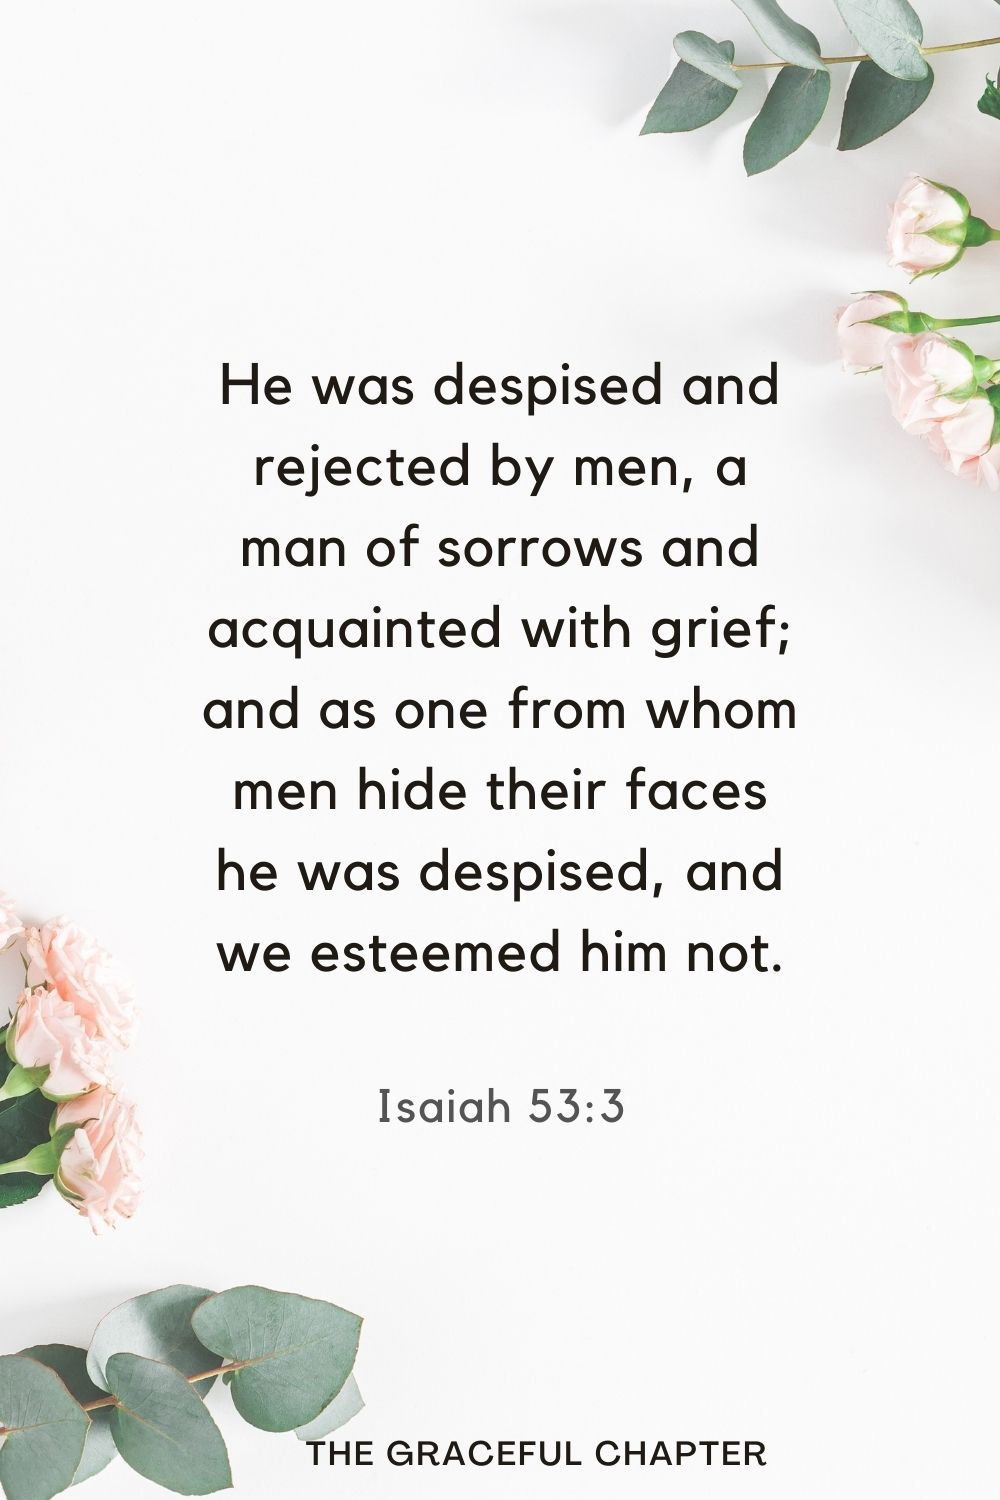 He was despised and rejected by men, a man of sorrows and acquainted with grief; and as one from whom men hide their faces he was despised, and we esteemed him not. Isaiah 53:3